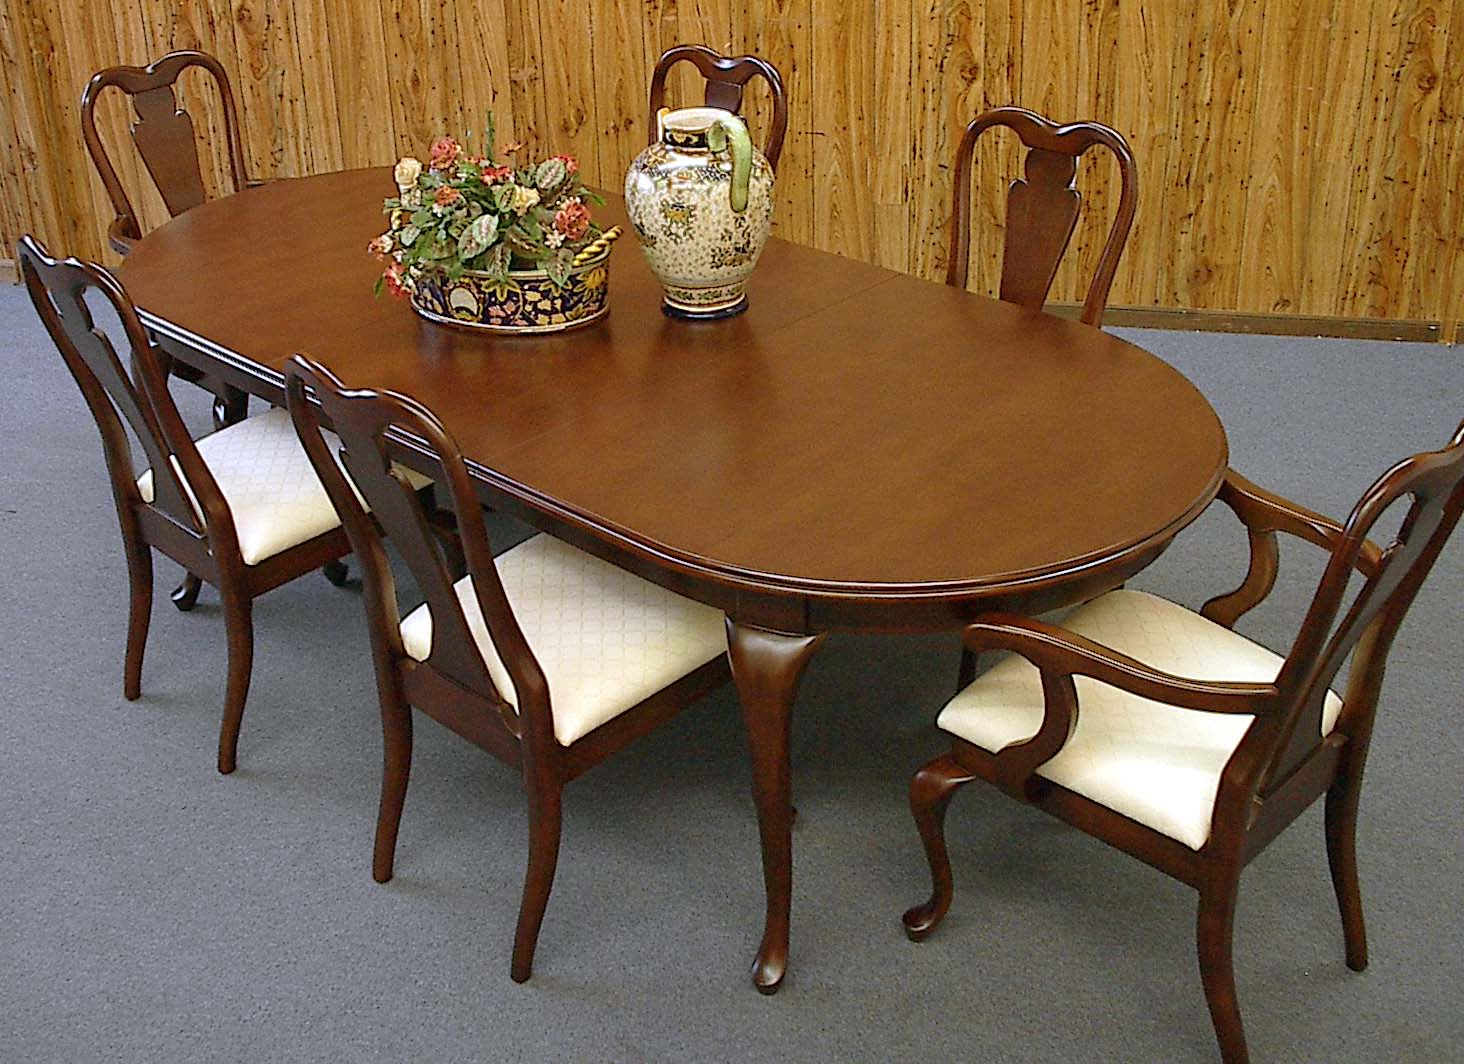 7 Piece 8ft Queen Anne Mahogany Dining Table And Chair Set EBay